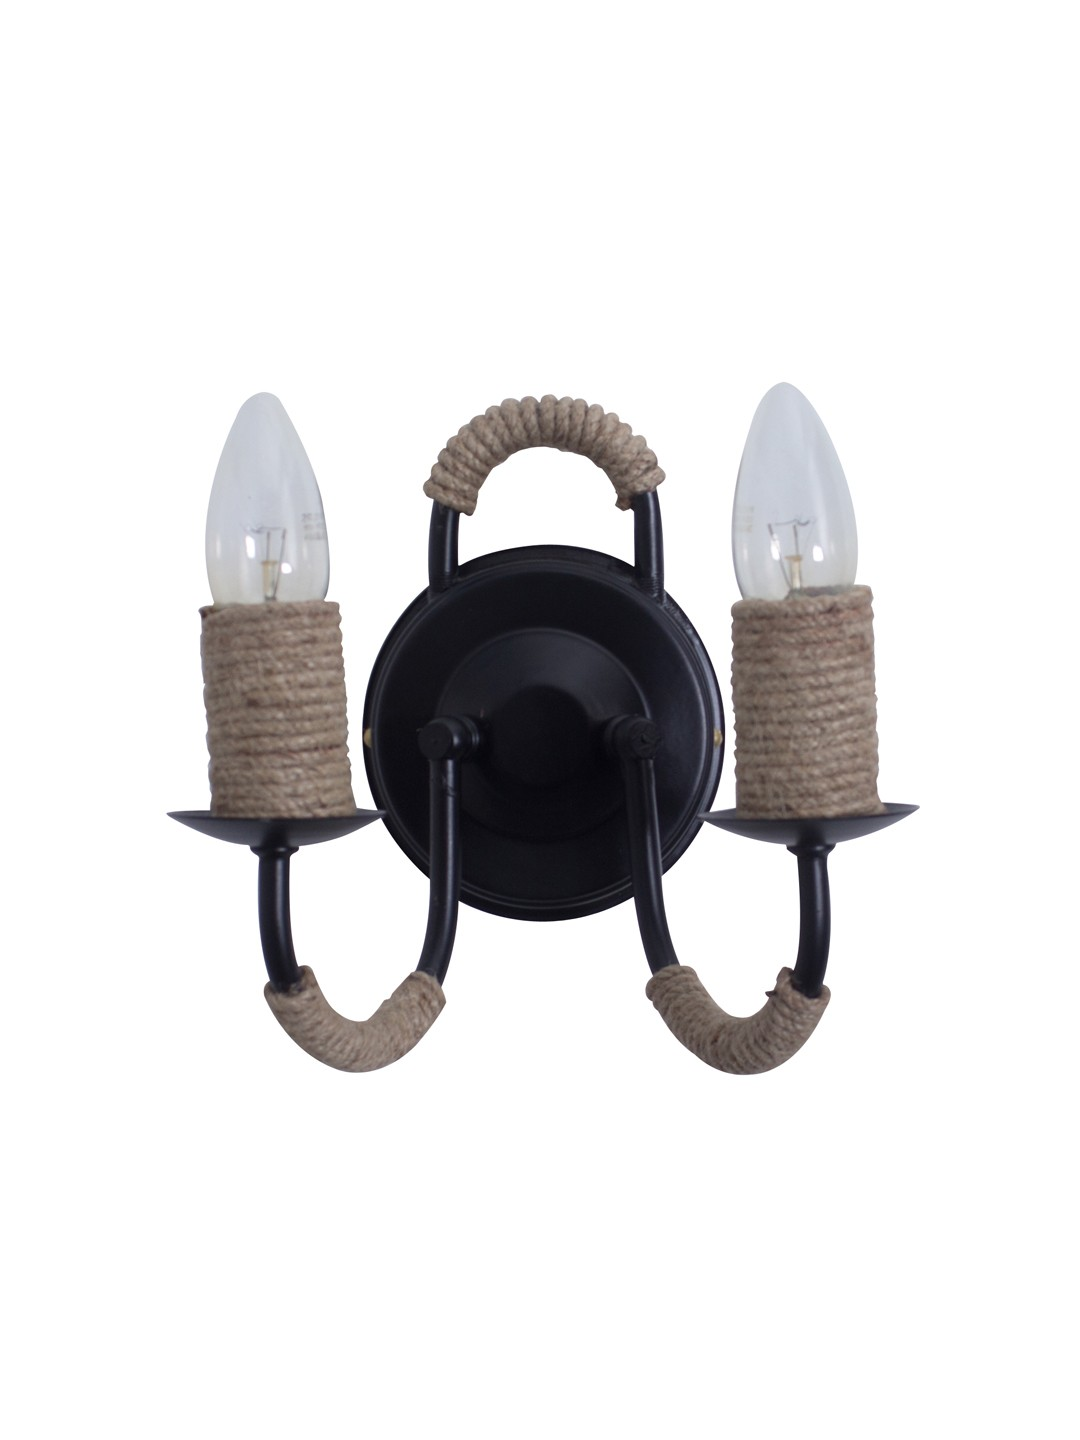 Beach House Rope Candelabra Black Double Wall Lamp